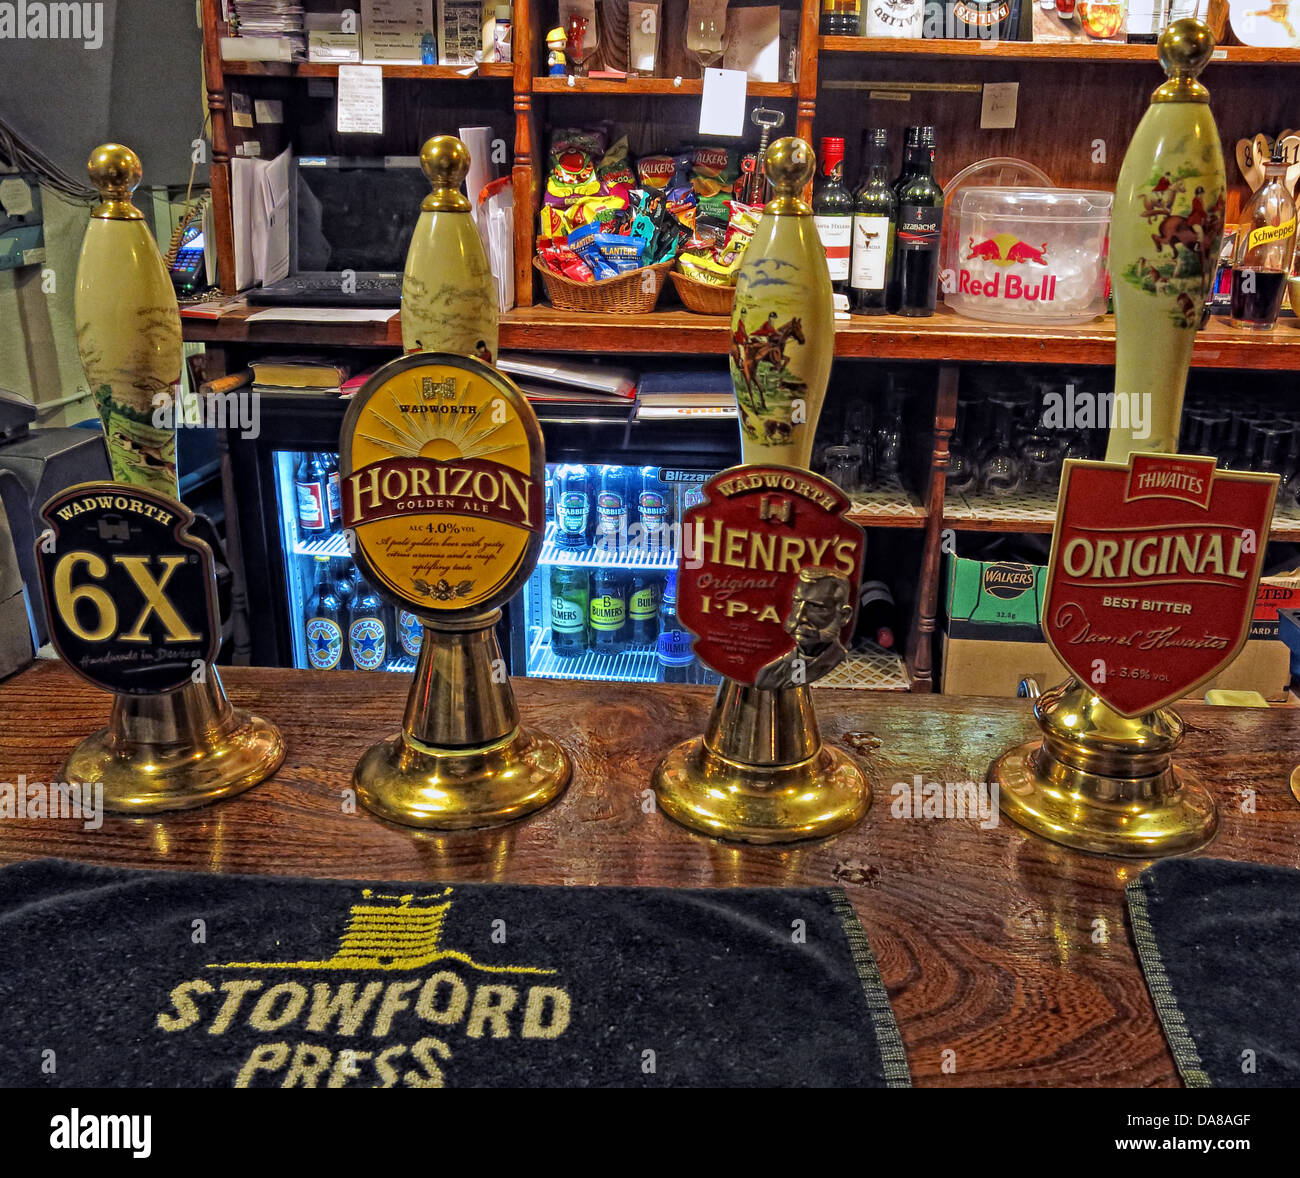 English,traditional,ale,hand,drawn,pumps,on,a,bar,in,Wiltshire,South,West,England,6X,Horizon,Henrys,Original,Wadworth,Stowford,Press,Cidre,Cider,Ale,Beer,Beers,Cidres,Ciders,drinks,beverages,traditional,public,house,pump,handdrawn,towel,SL8,1NZ,SL81NZ,gotonysmith,Buy Pictures of,Buy Images Of